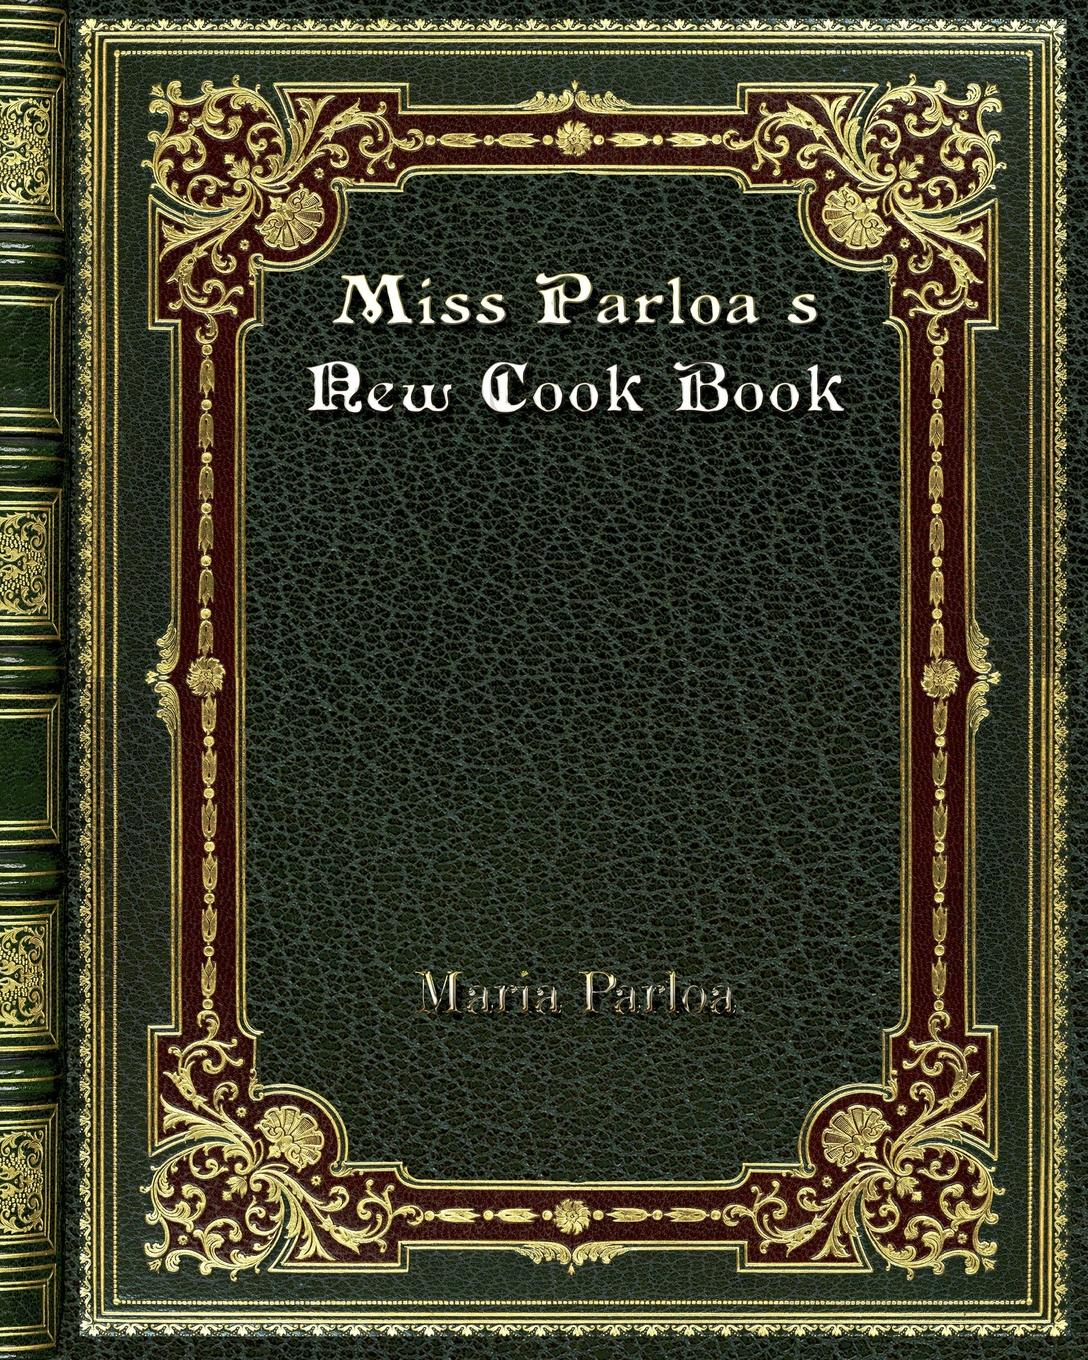 Maria Parloa Miss Parloa's New Cook Book delia s how to cook book three